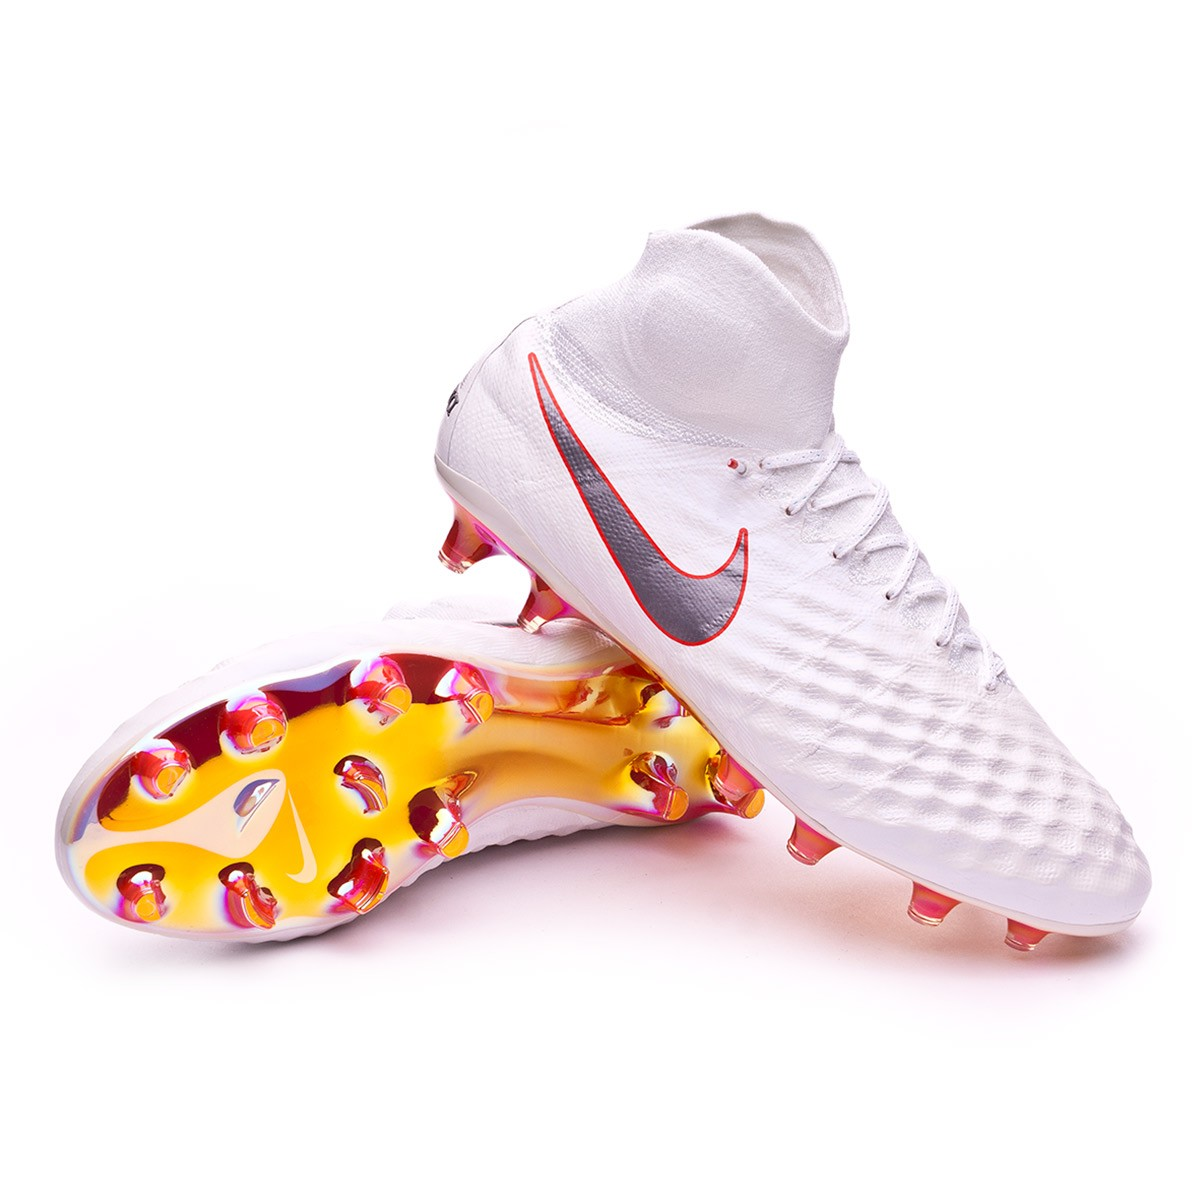 fd157c80d Football Boots Nike Magista Obra II Elite DF FG White-Metallic cool ...